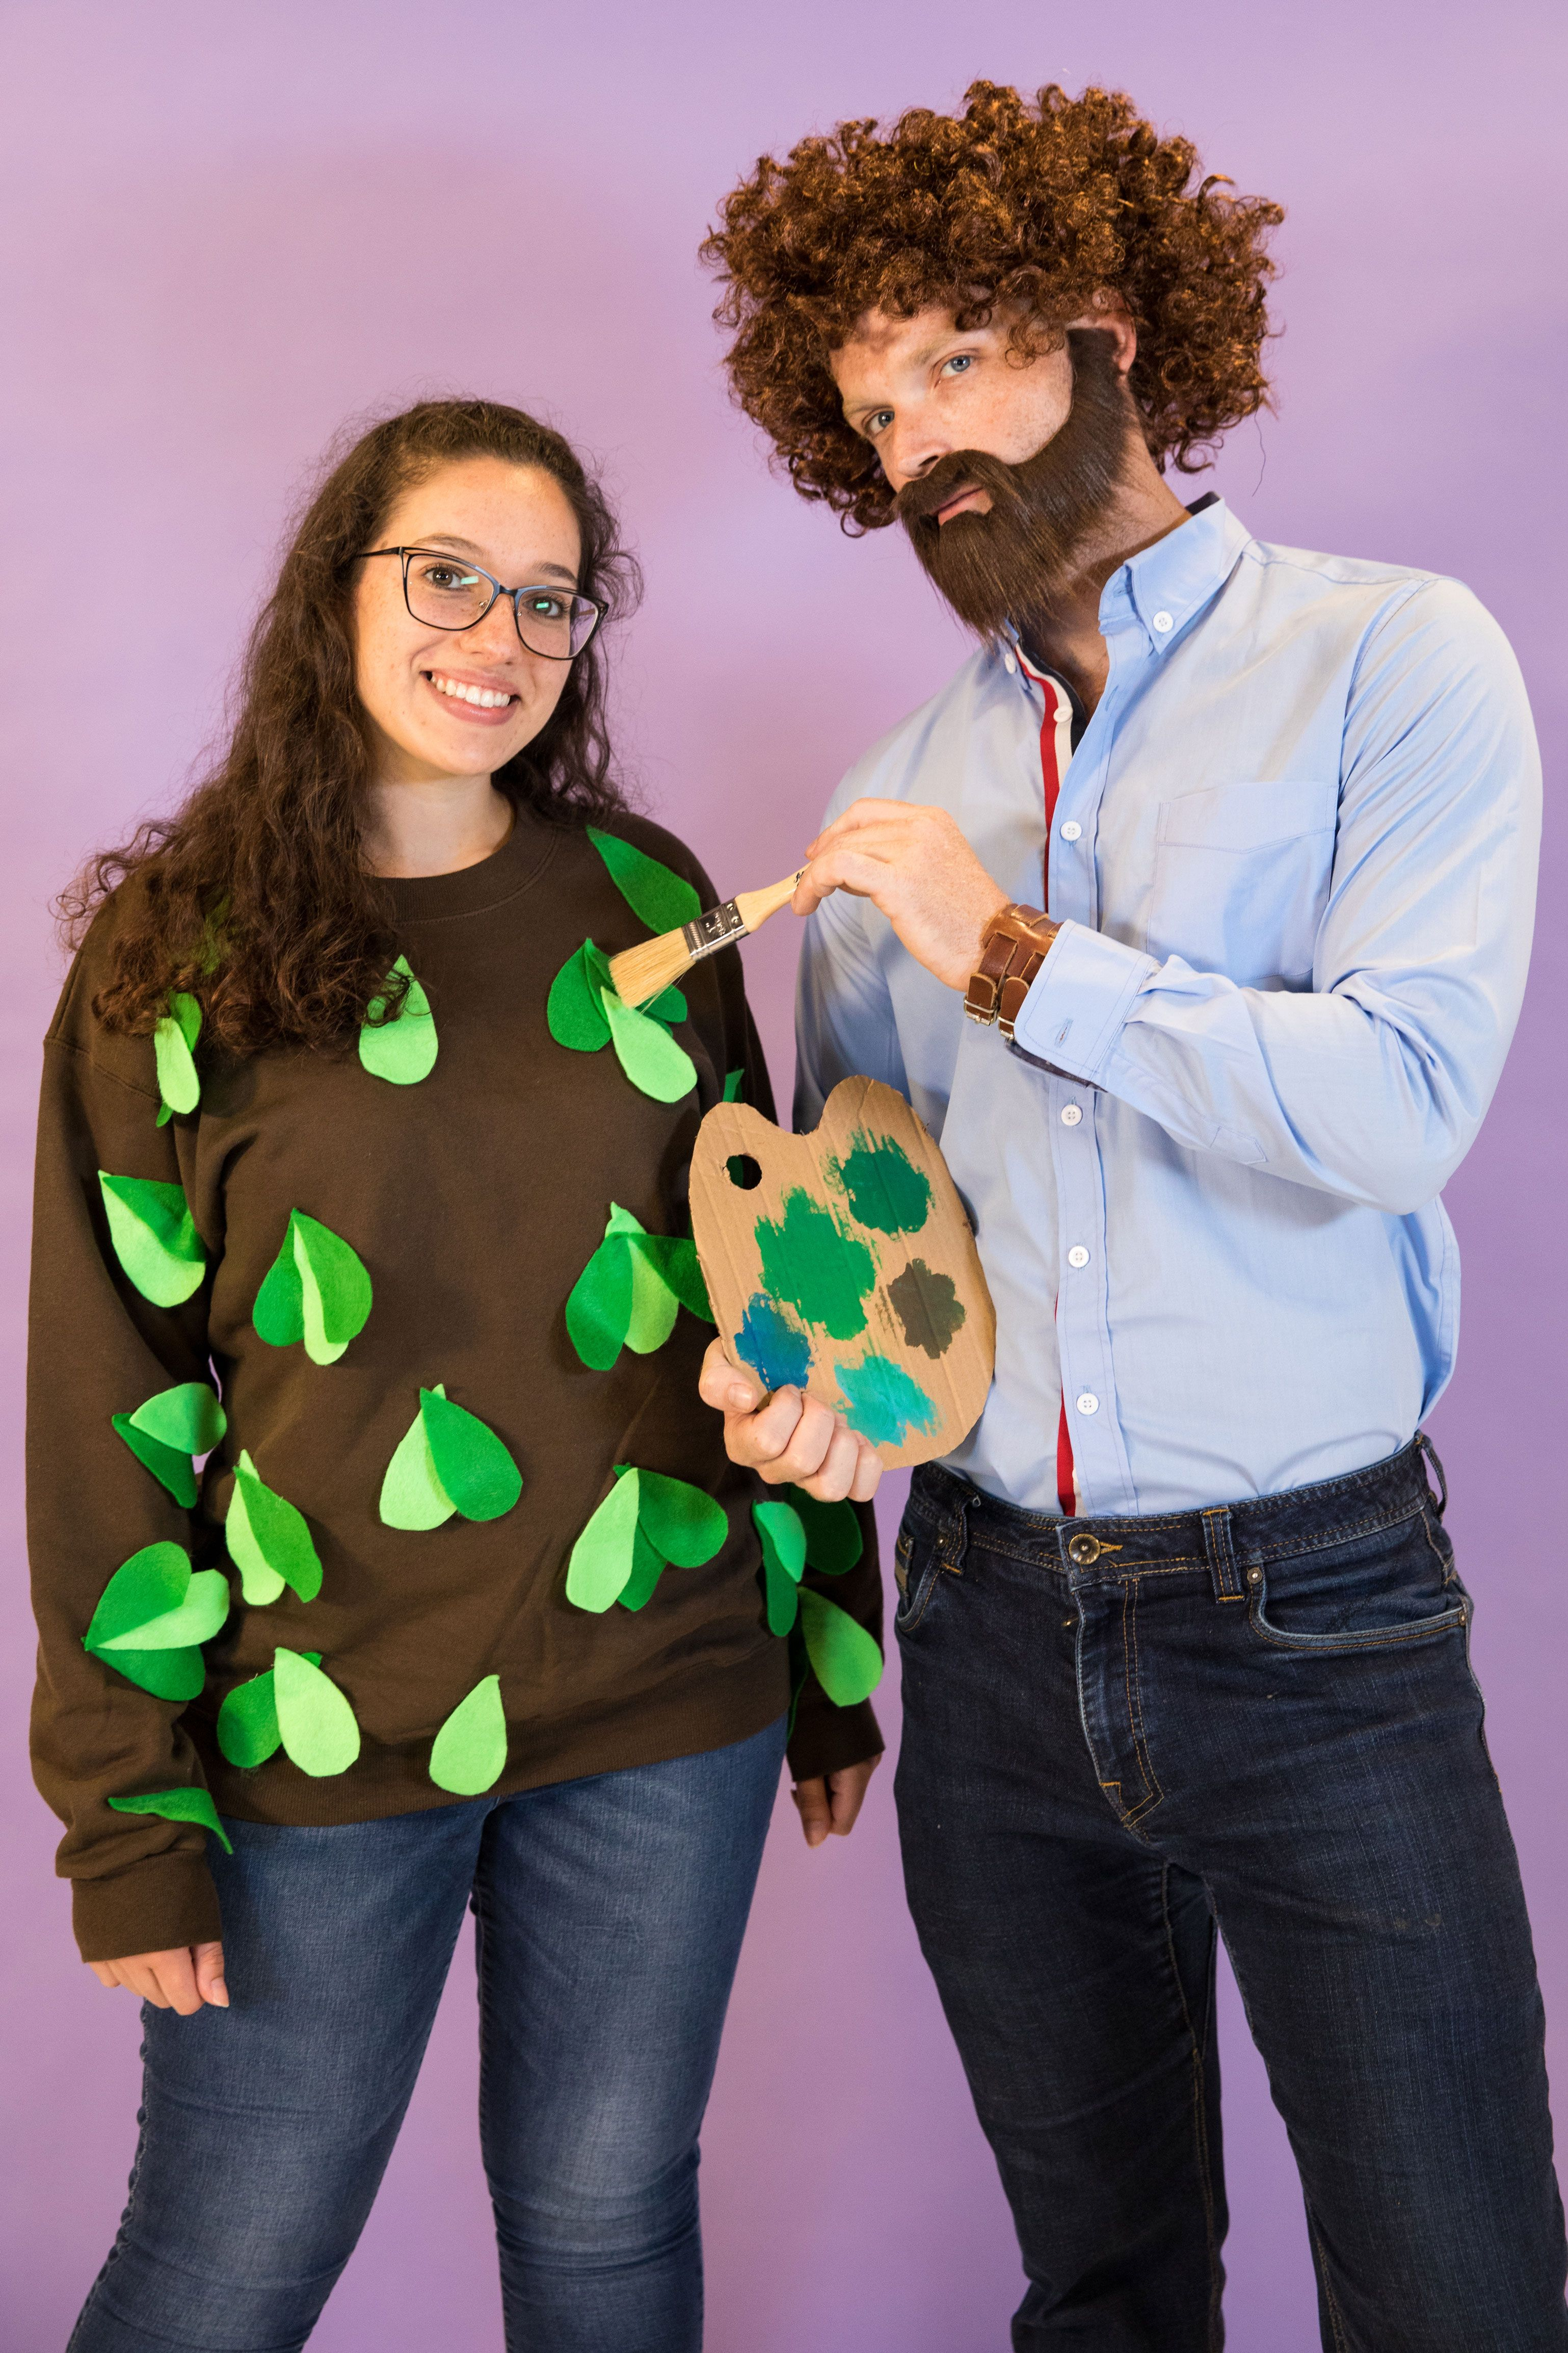 Wonderful Bob Ross And A Happy Little Tree Halloween Costumes For Couples